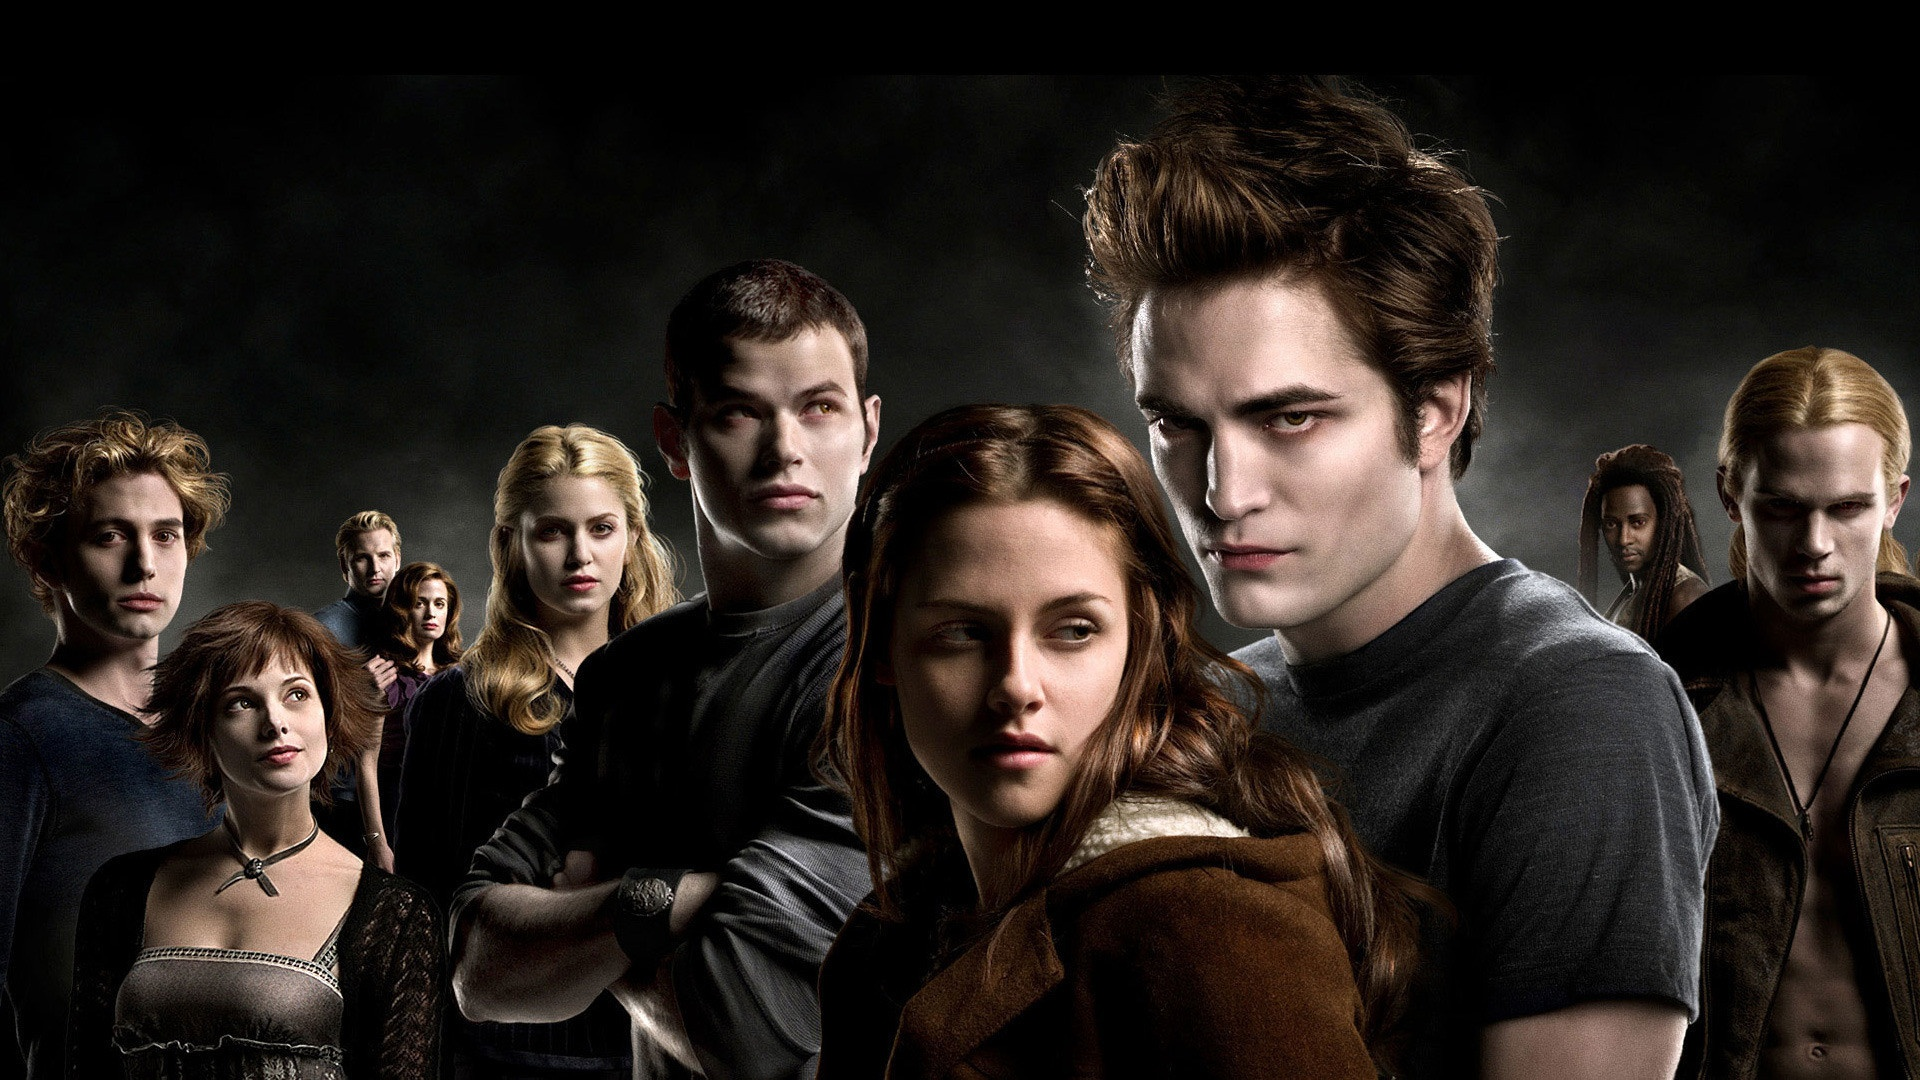 Twilight La Saga Images HD Wallpaper And Background Photos